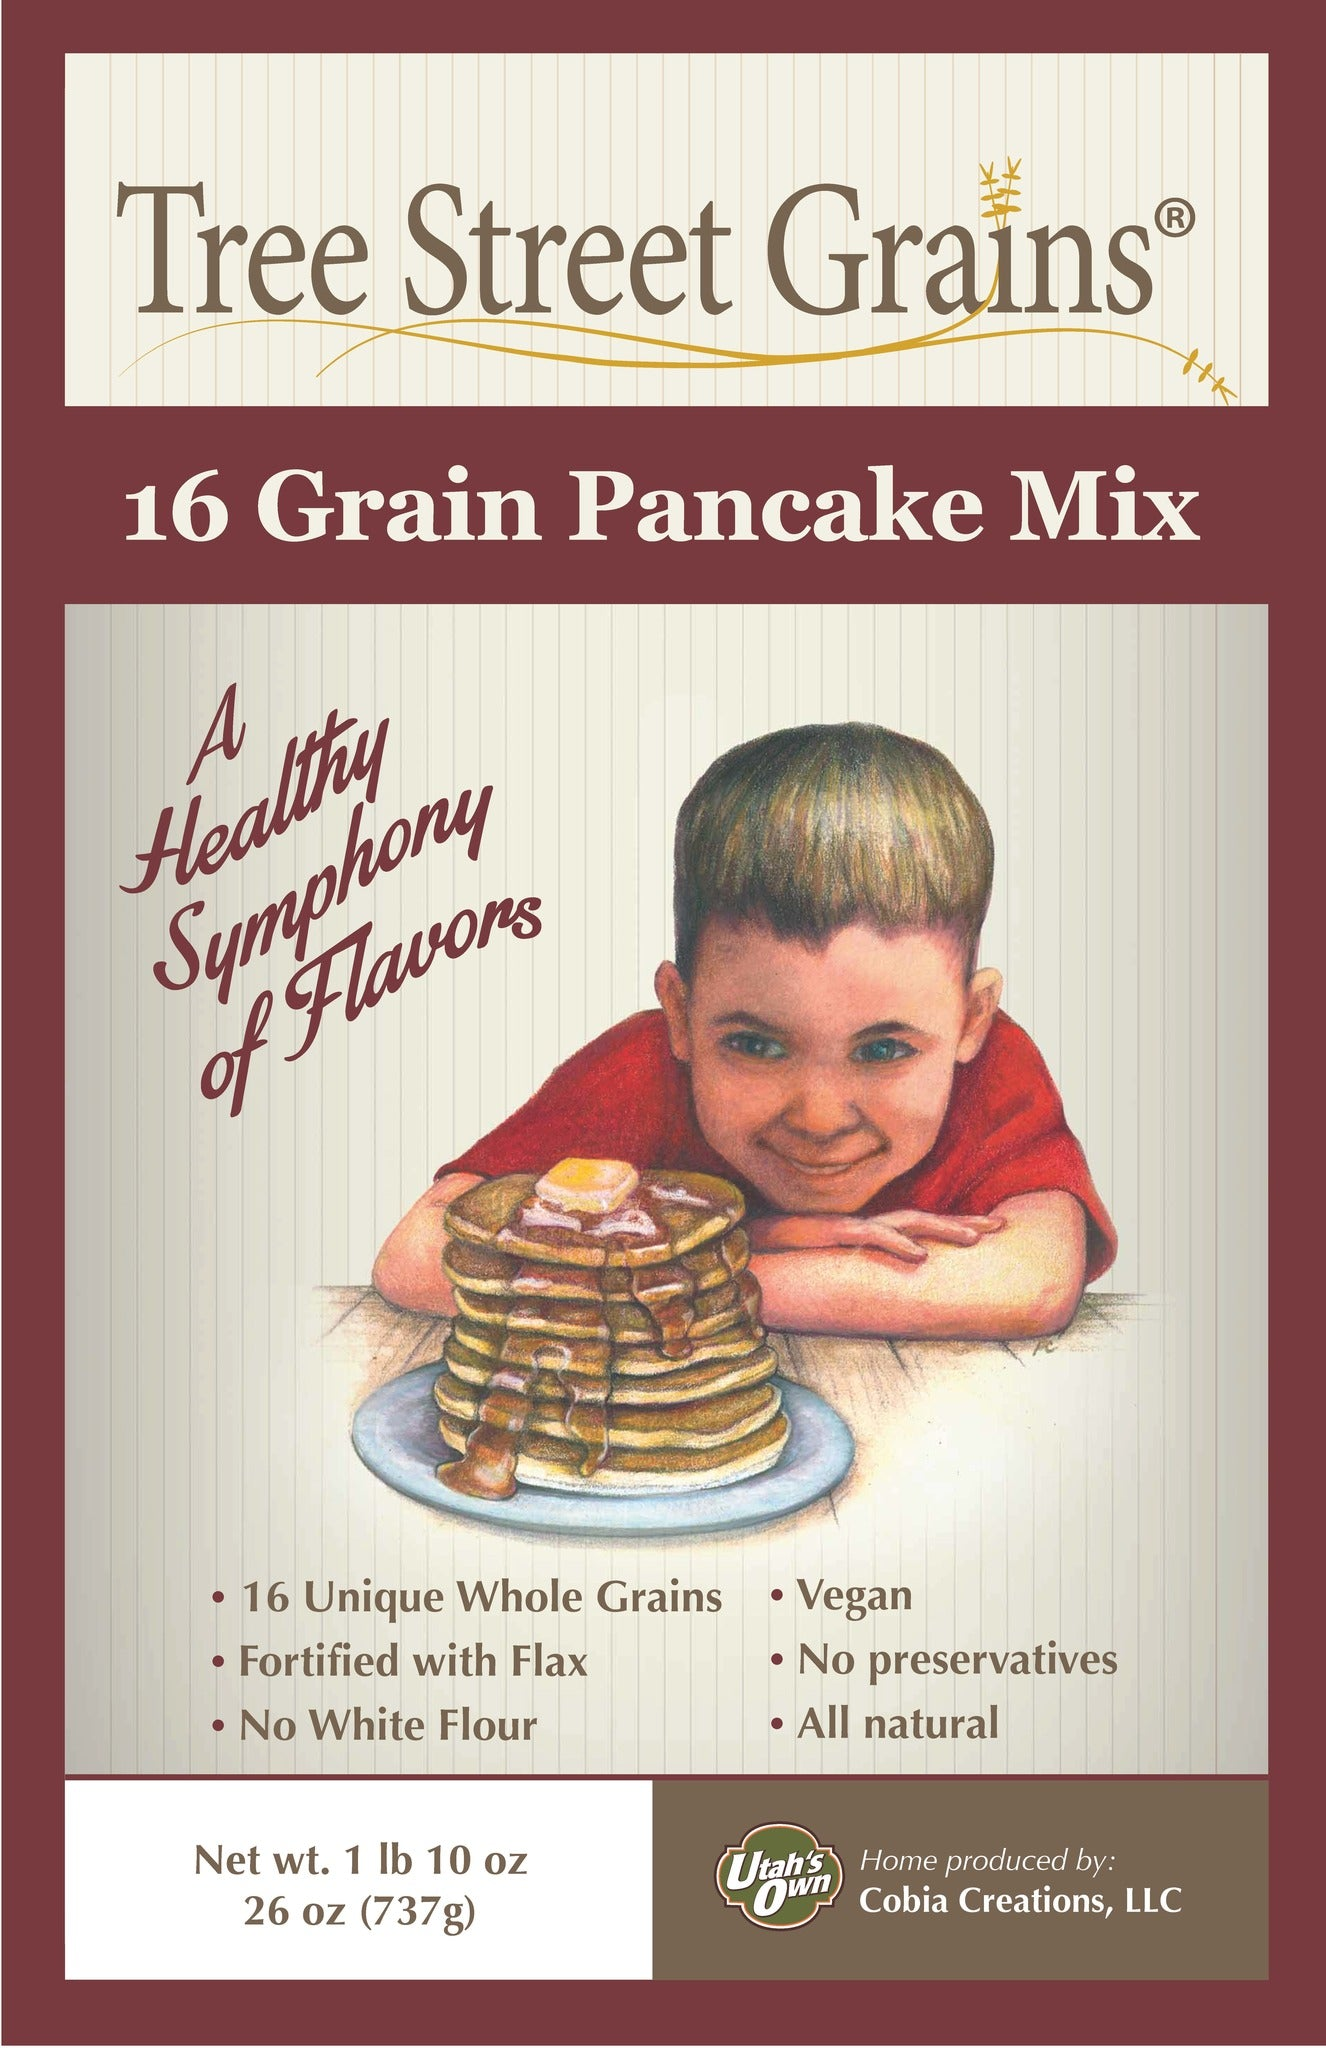 16 Grain Pancake Mix